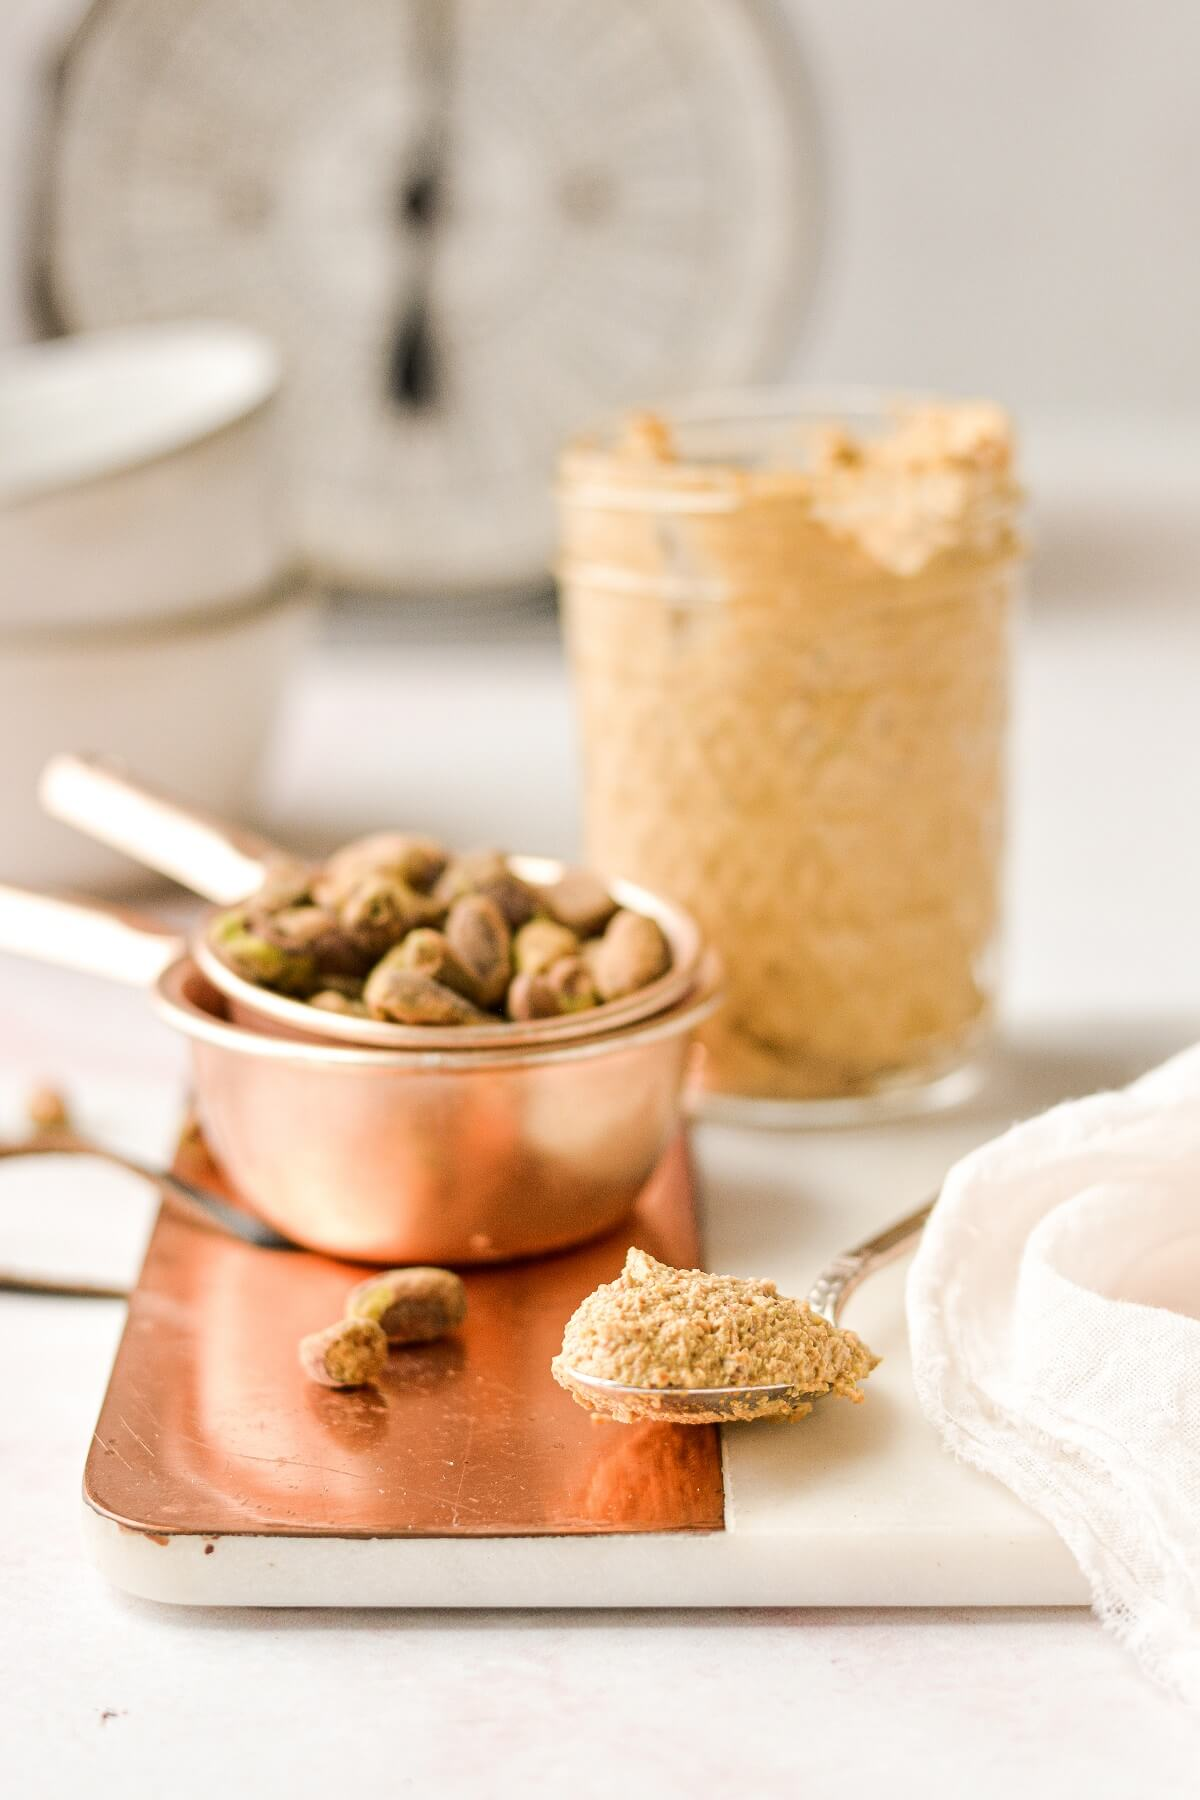 A jar of pistachio butter, next to pistachios and a spoon resting on a serving board.